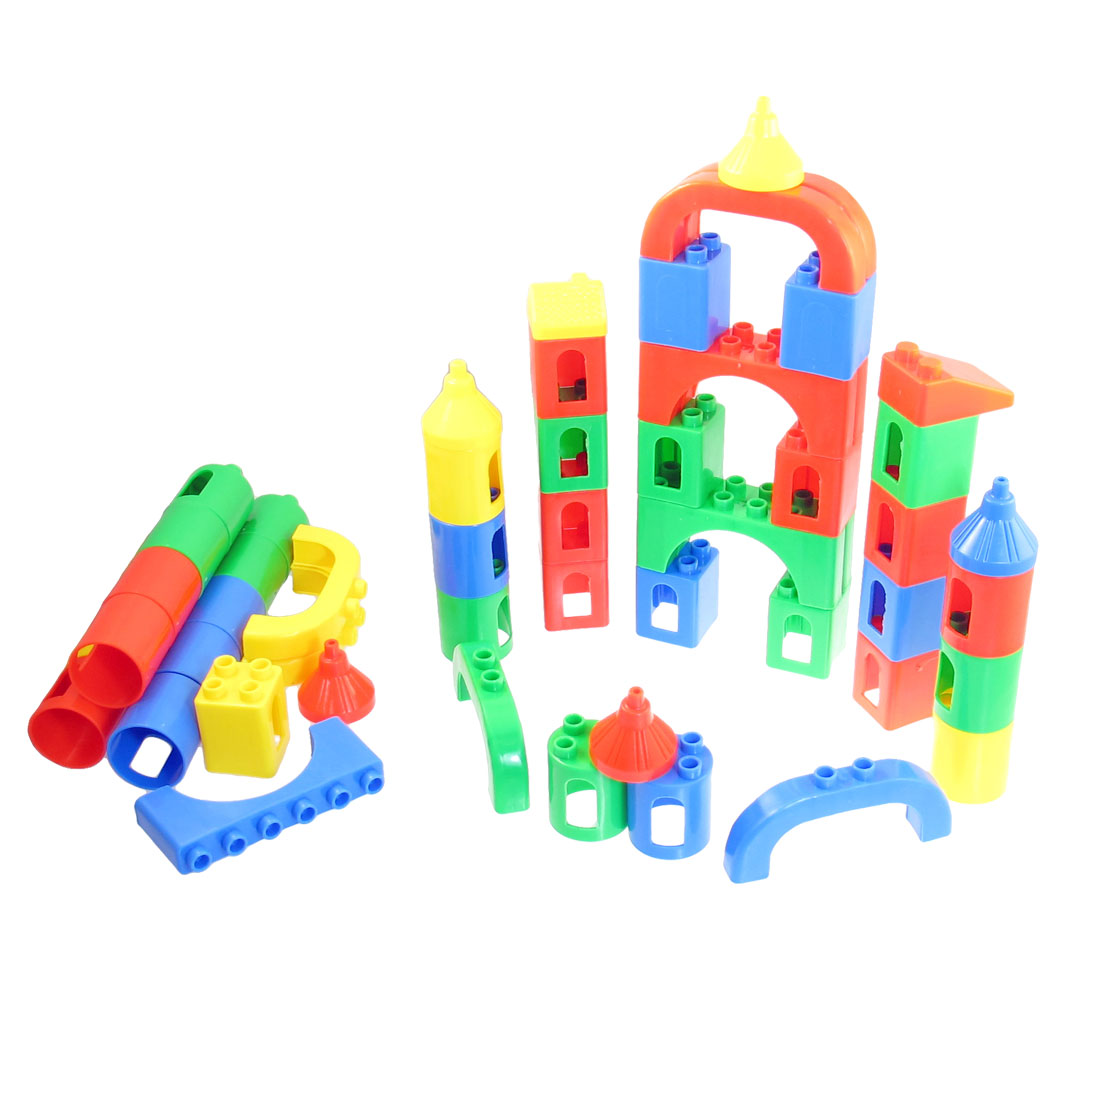 Children Educational Brain Training Plastic Transformable Building Block Toy